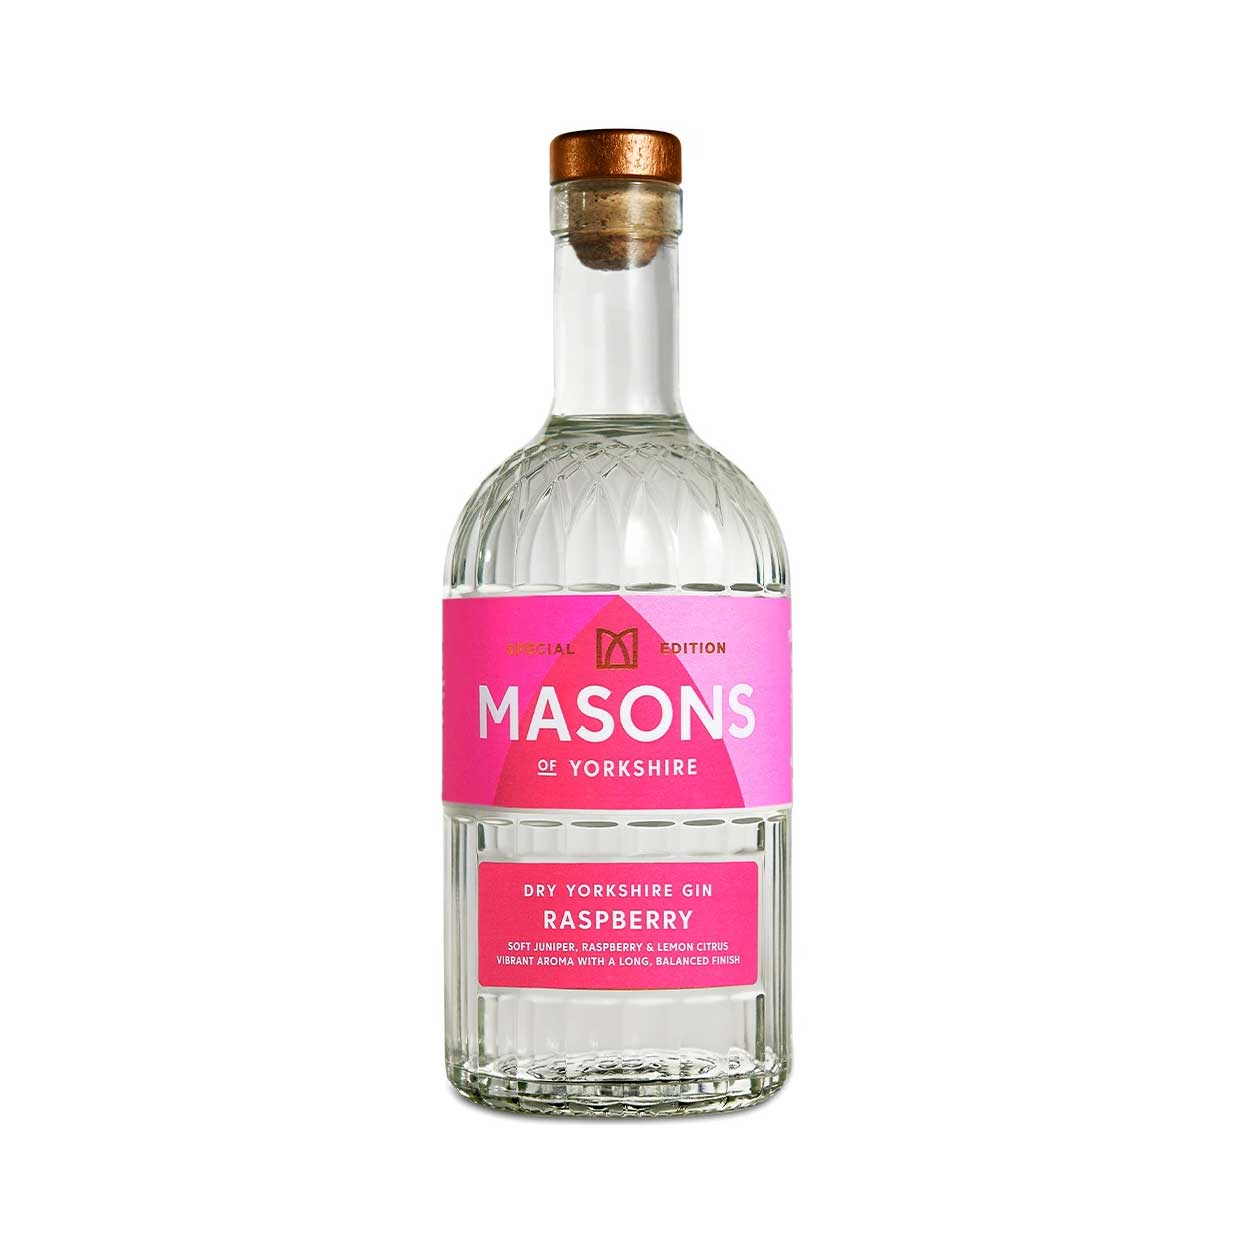 Masons Raspberry Gin Bottle 2021